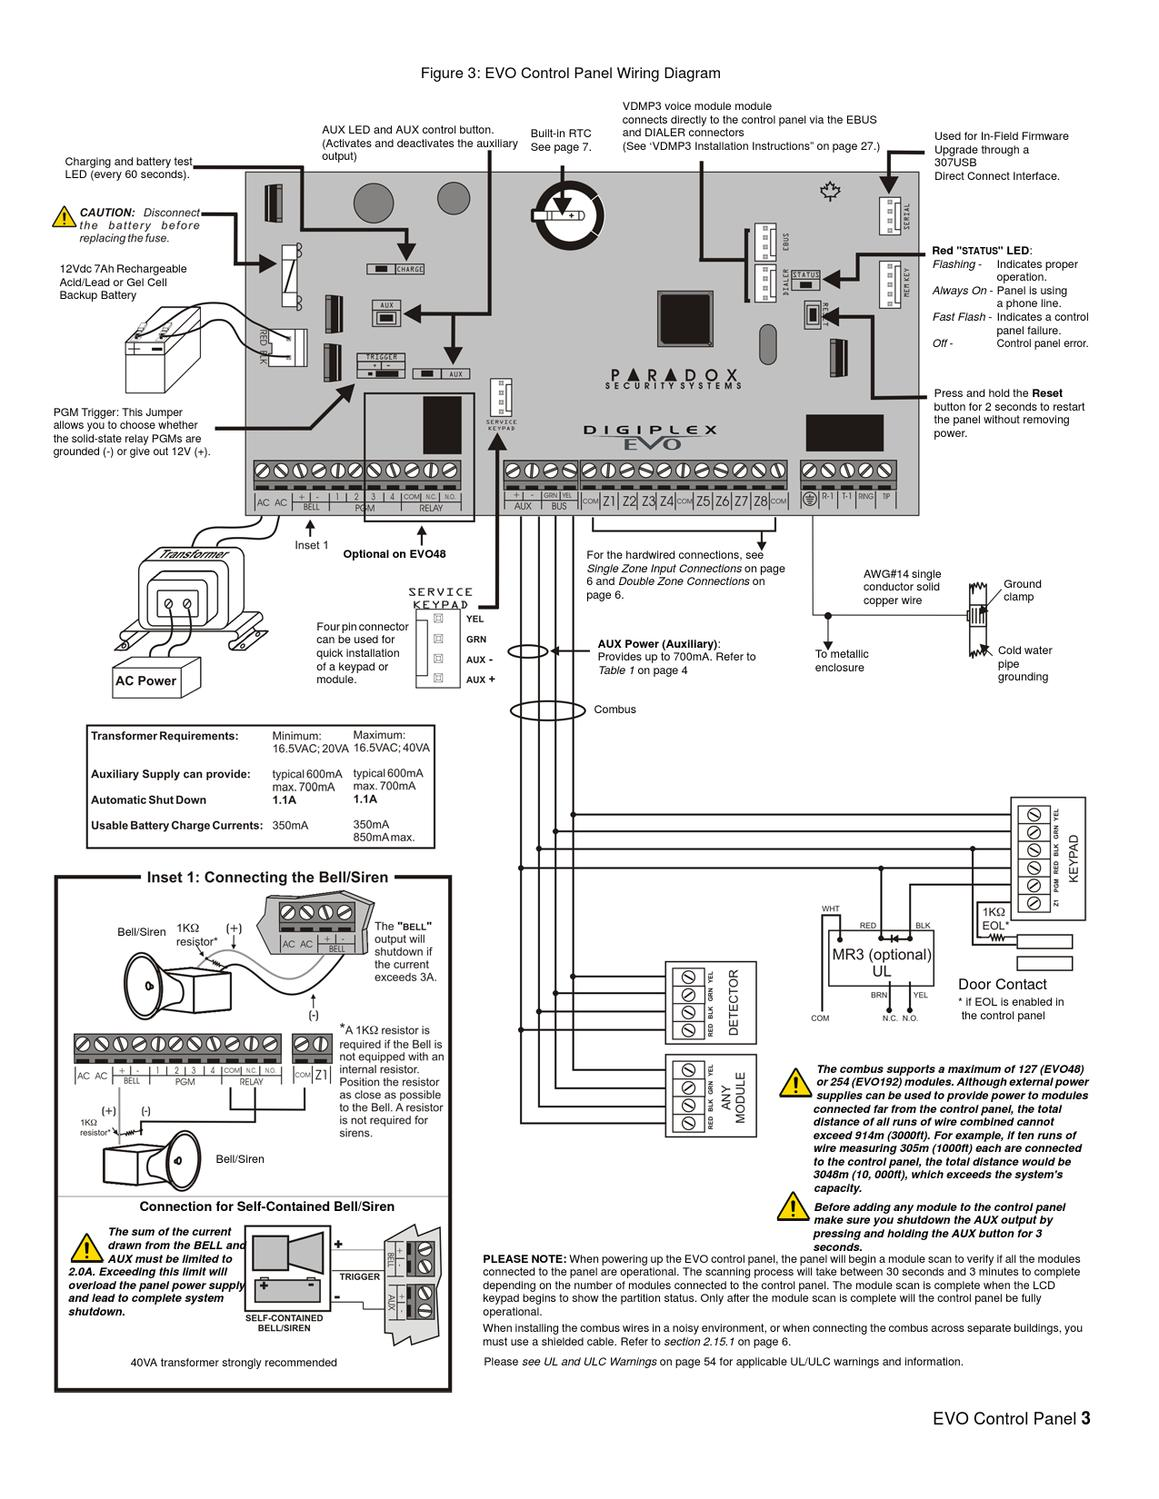 Automotive Wiring Diagram For Android Manual Guide